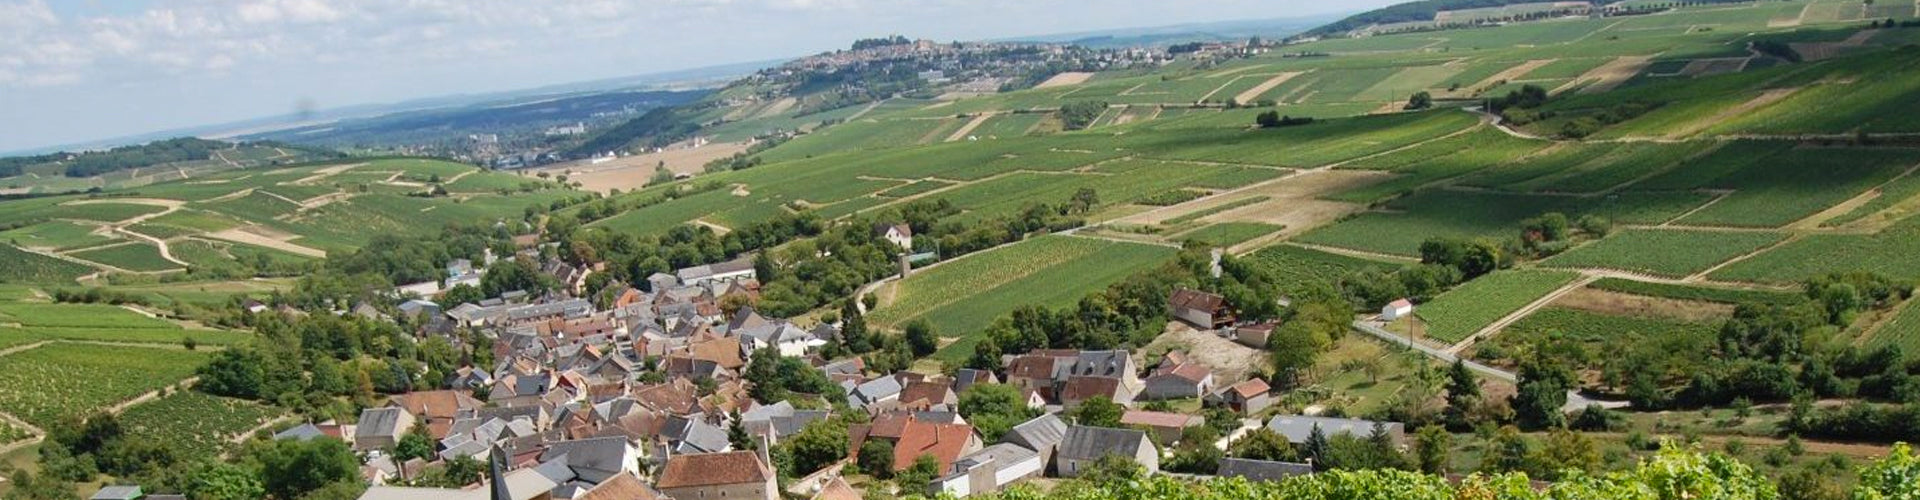 Cotat vineyards in Chavignol, Sancerre